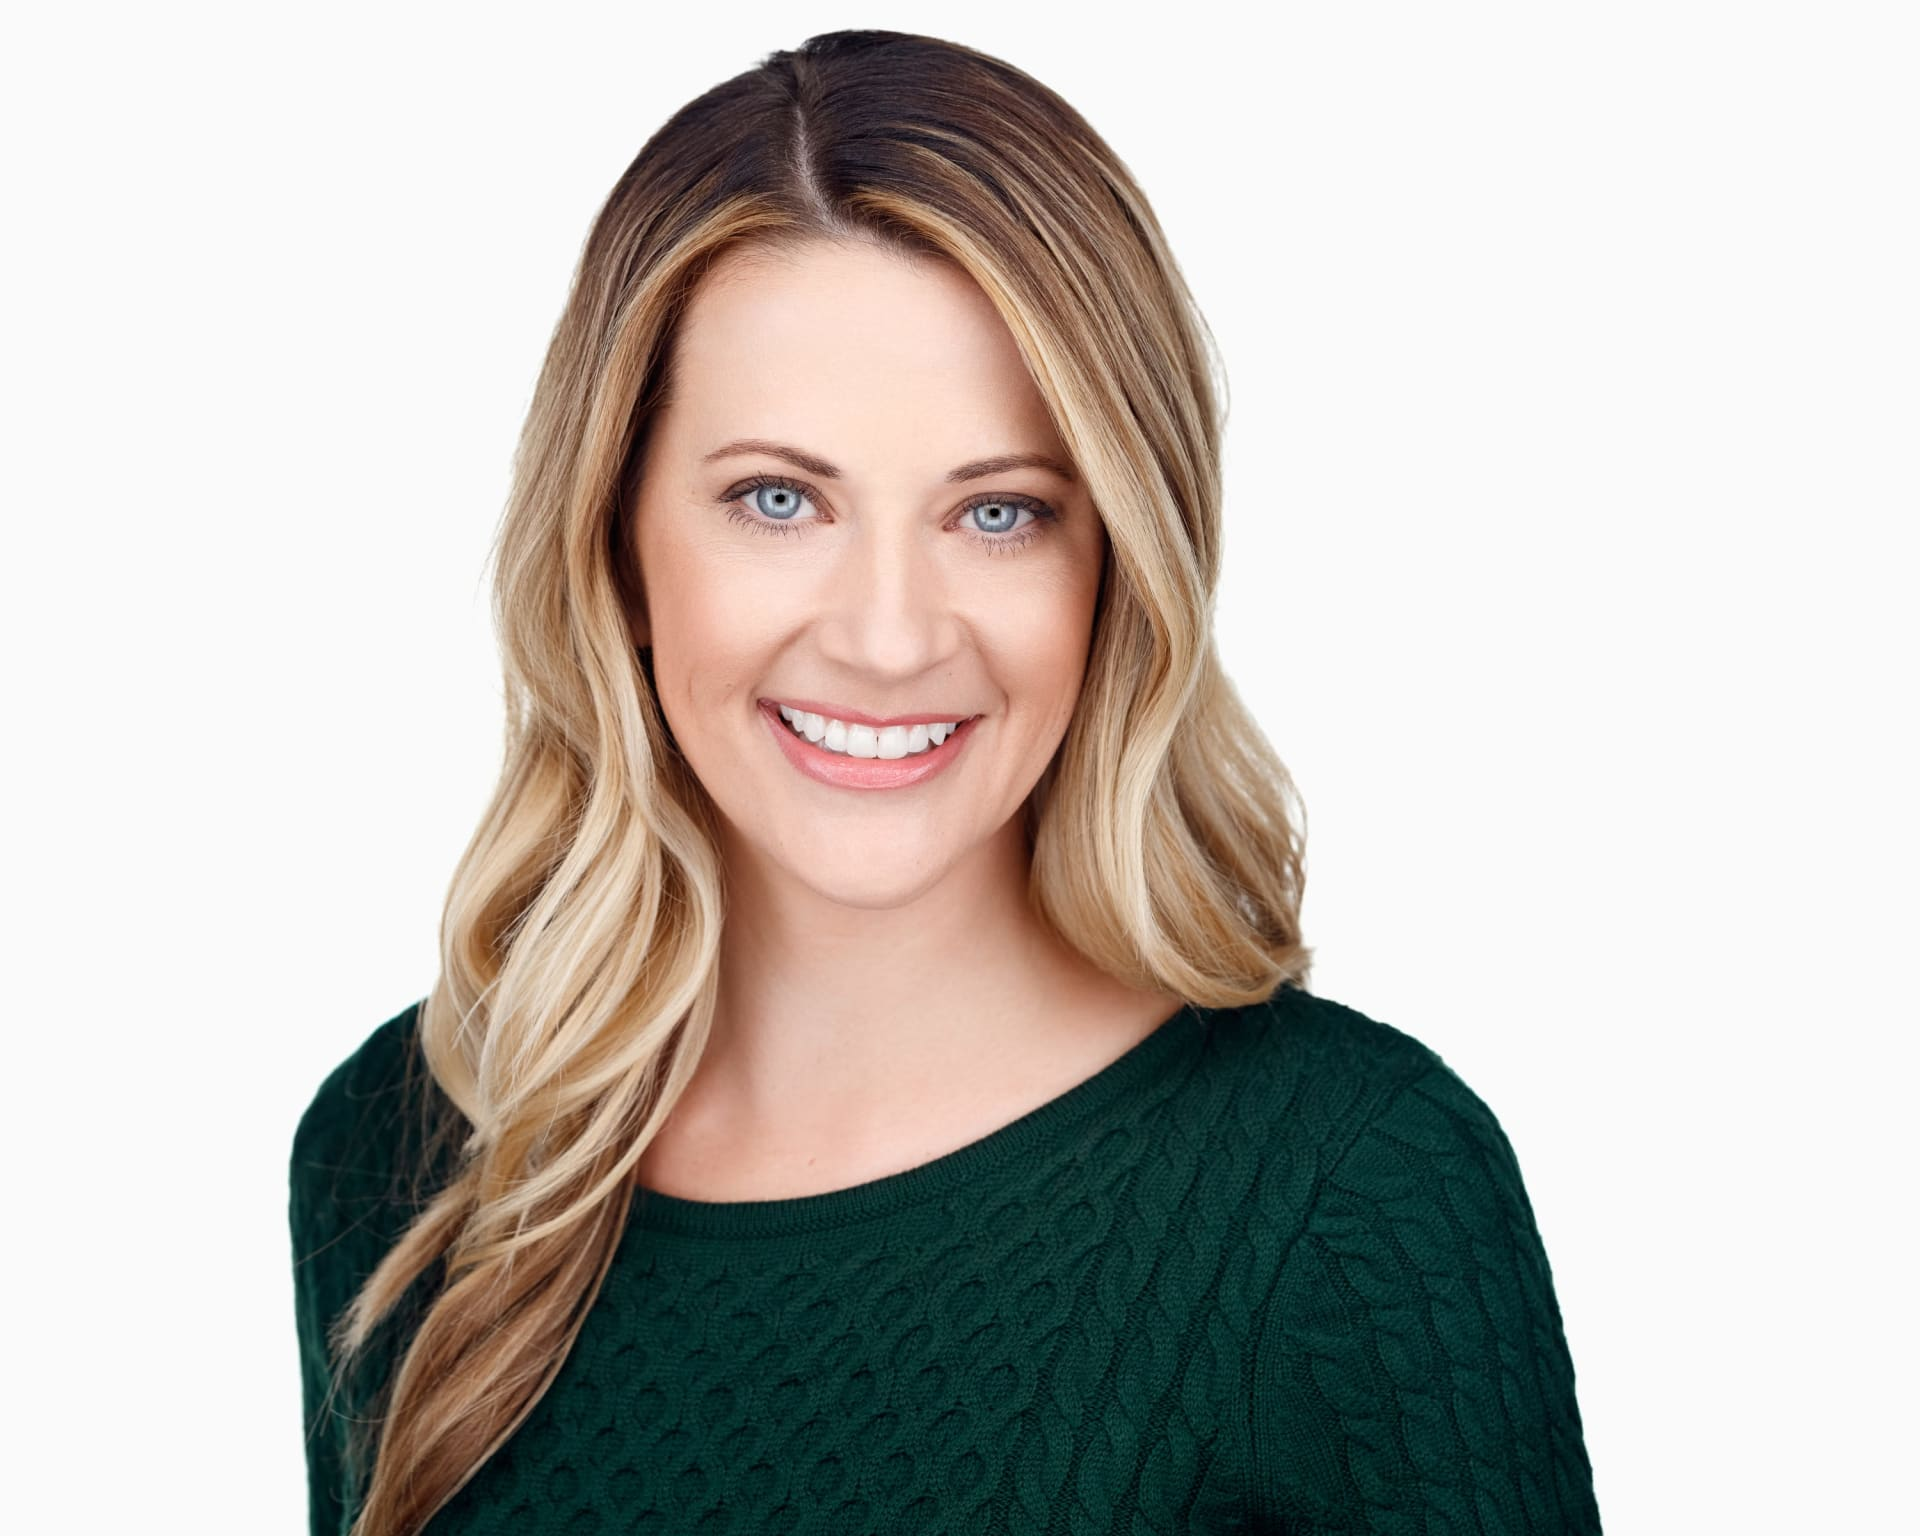 LIV Sotheby's International Realty Welcomes Brooke Maline to the Vail Valley Team of Esteemed Brokers